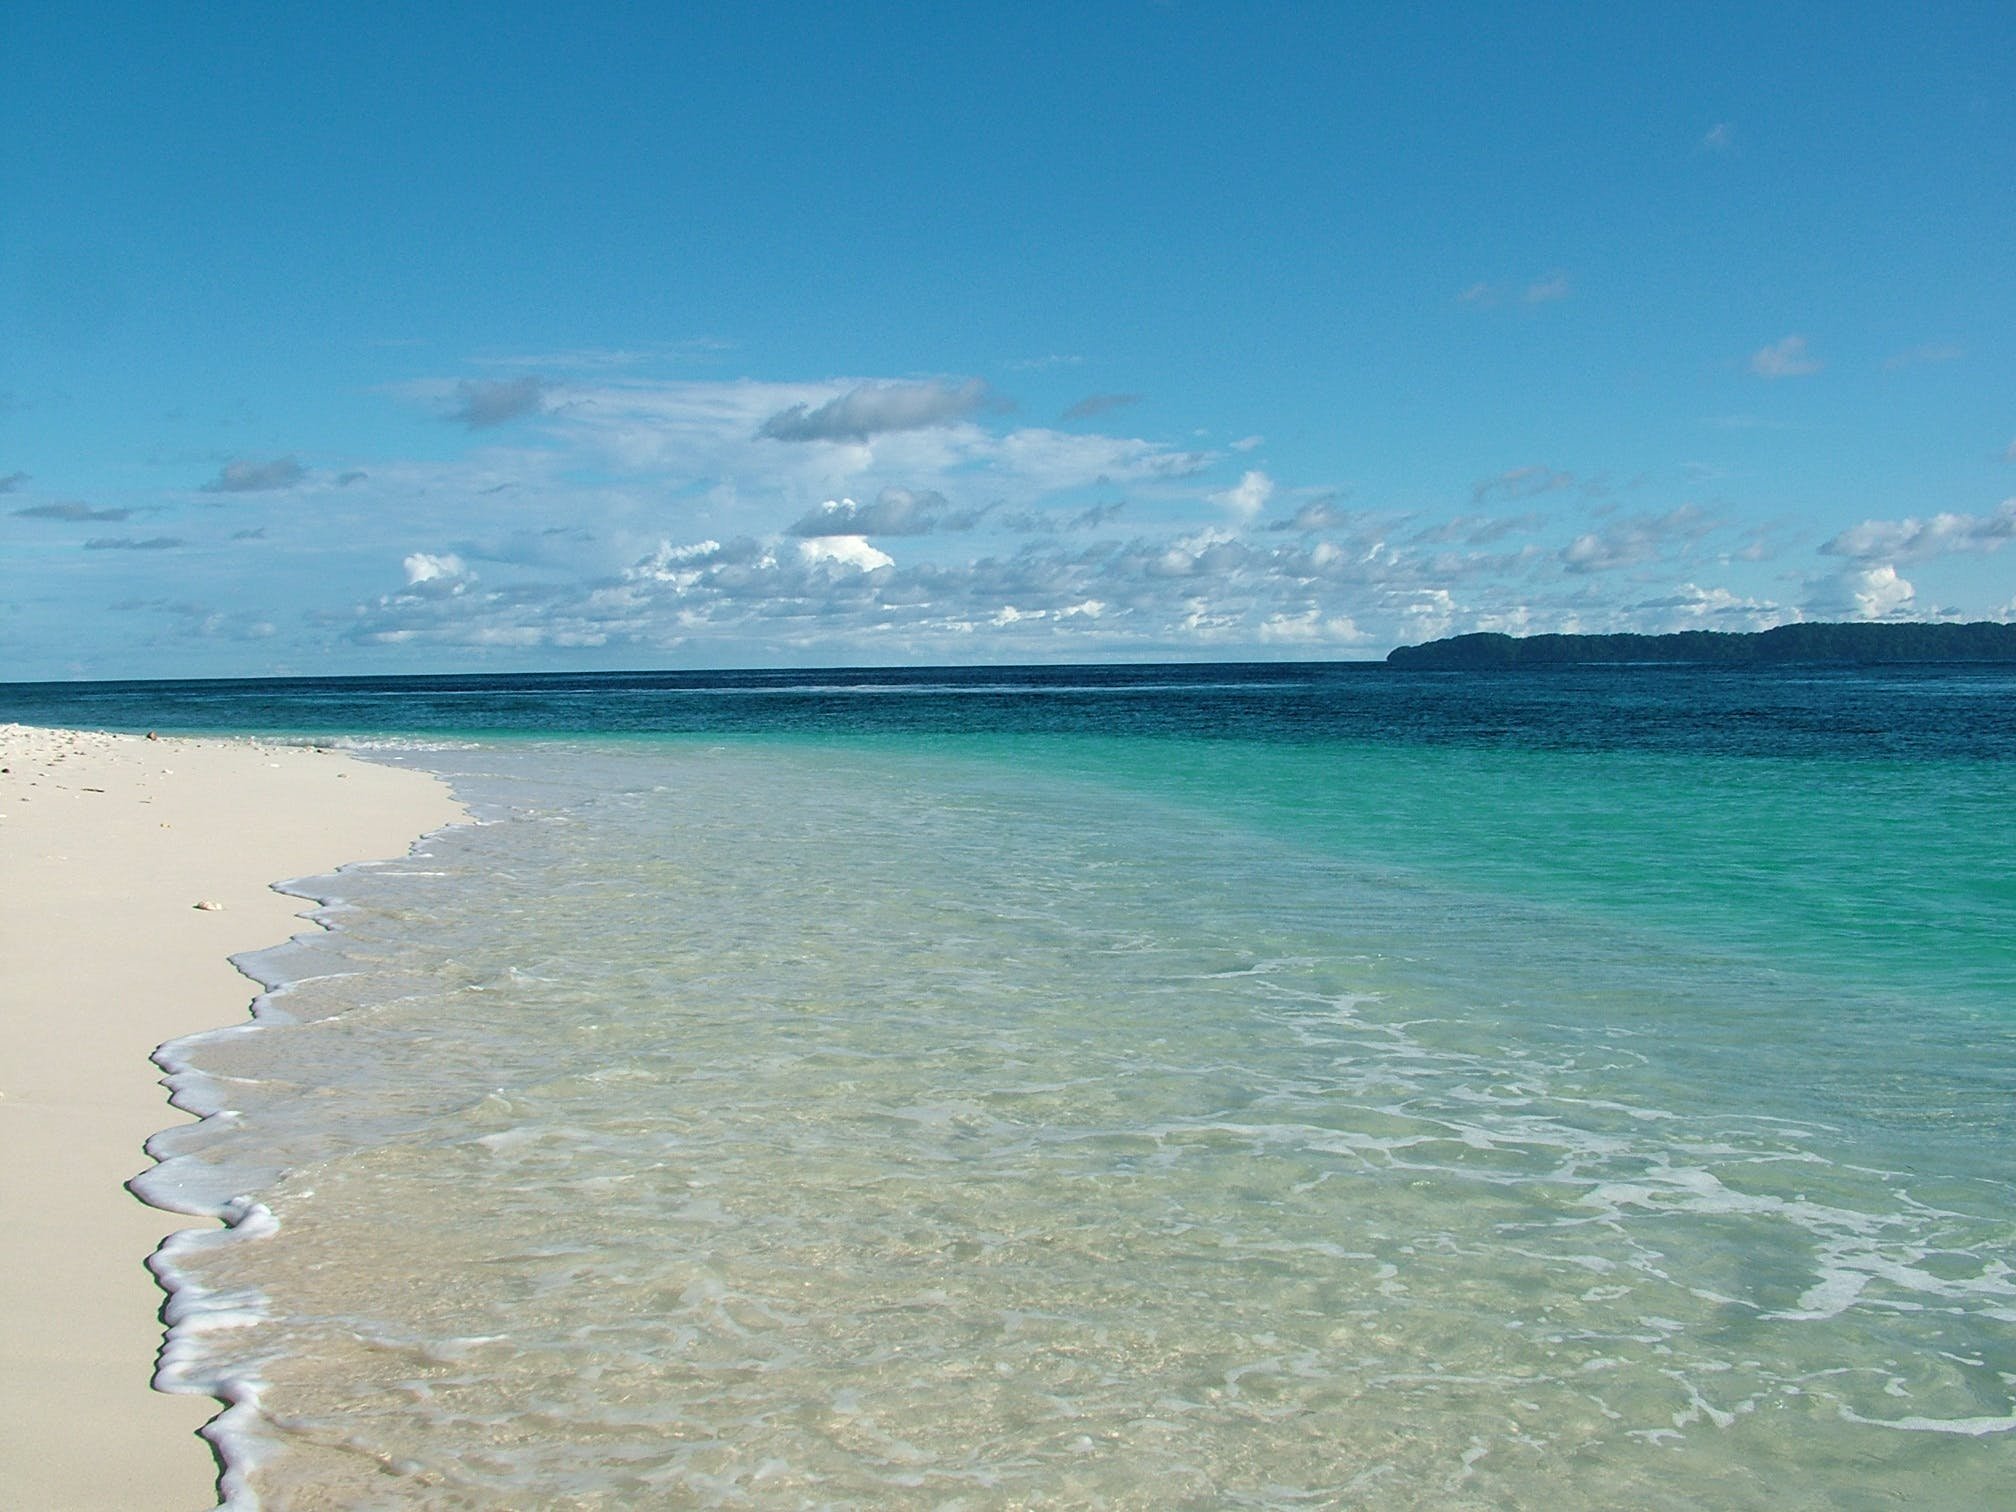 Free stock photo of beach, blue waters